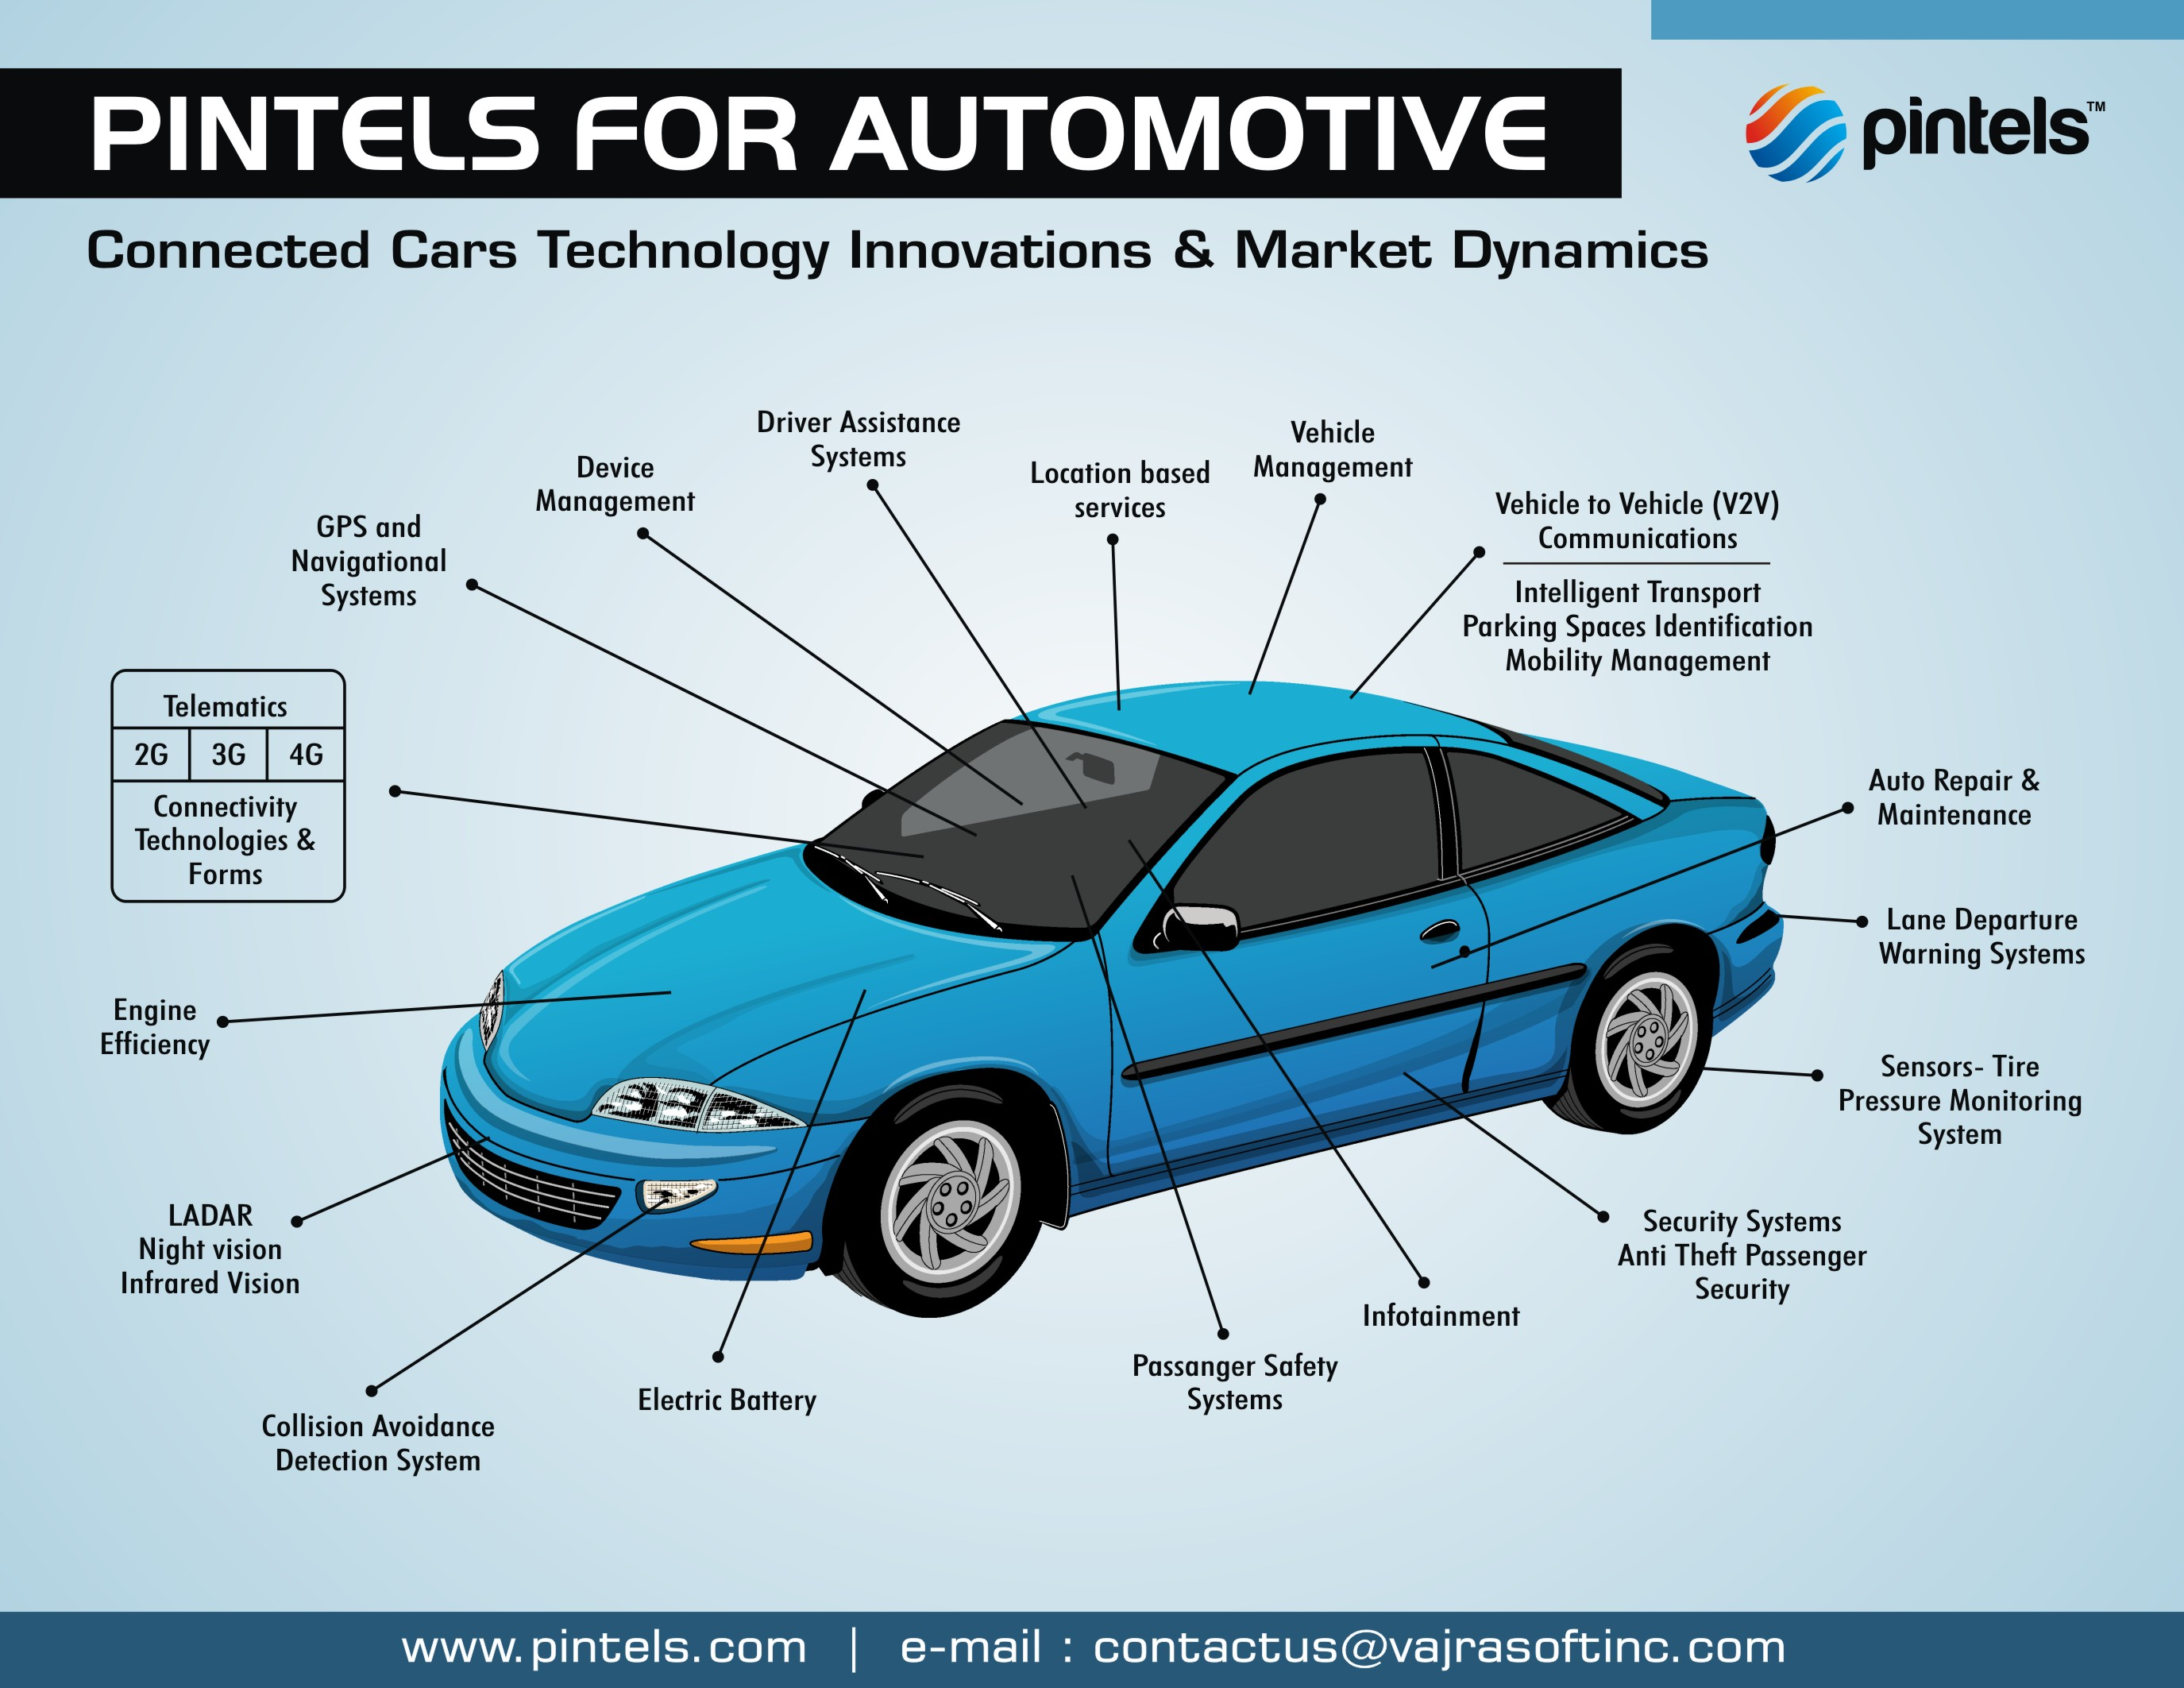 Pintels for Automotive Industry | VajraSoft Inc